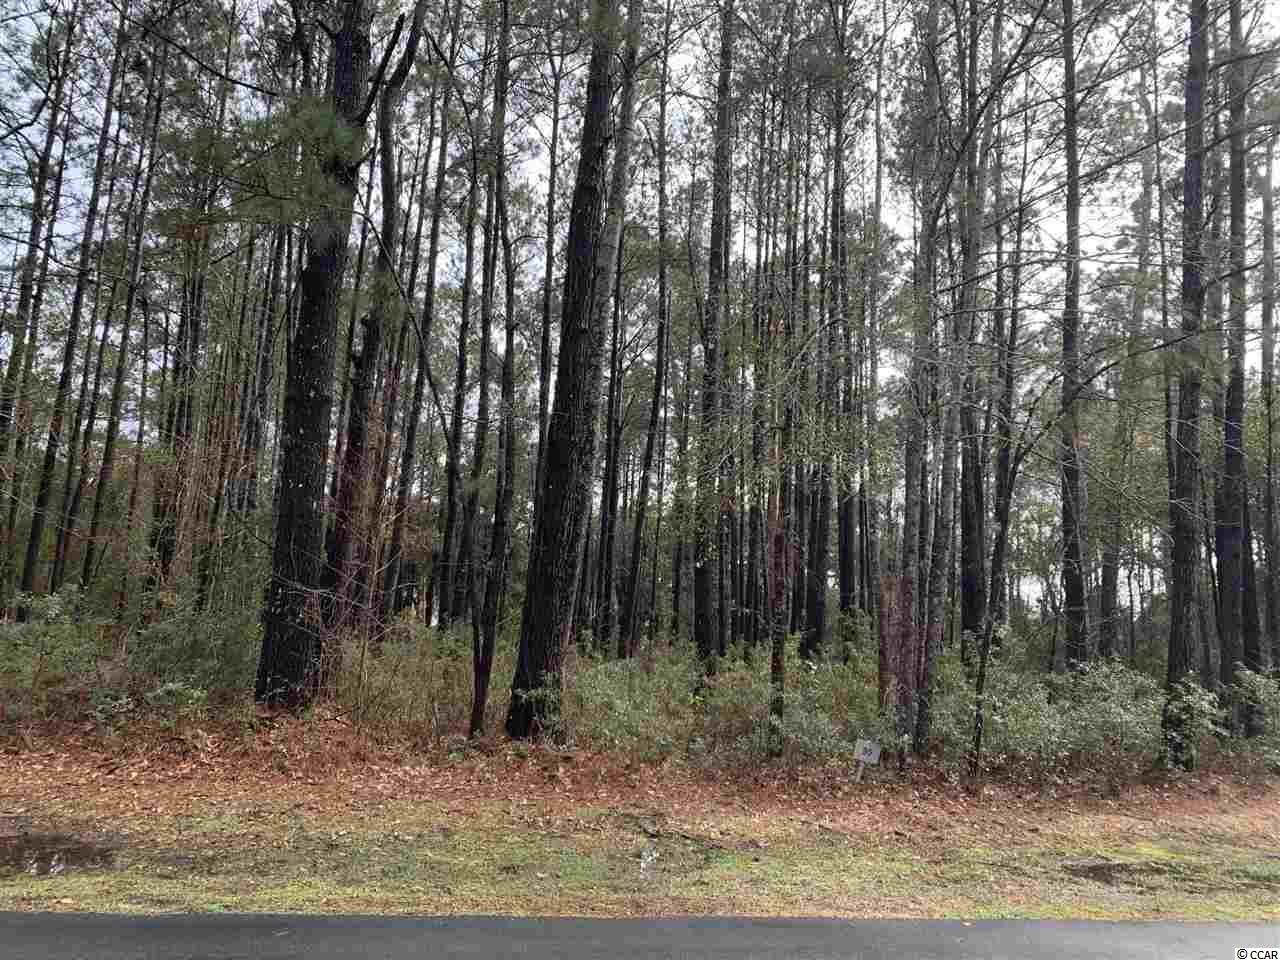 Located on a quiet cul-de-sac, this wooded lot backs up to the 3rd fairway of DeBordieu's Pete Dye golf course. It is in a central location to the golf clubhouse, and still short ride to the beach by golf cart - the perfect location for to build a Lowcountry home. Within the gates of DeBordieu's private community, you can enjoy its many amenities, from the miles of private beach, to the pool and Beach Club, to the boat landing leading to DeBordieu Creek and North Inlet.